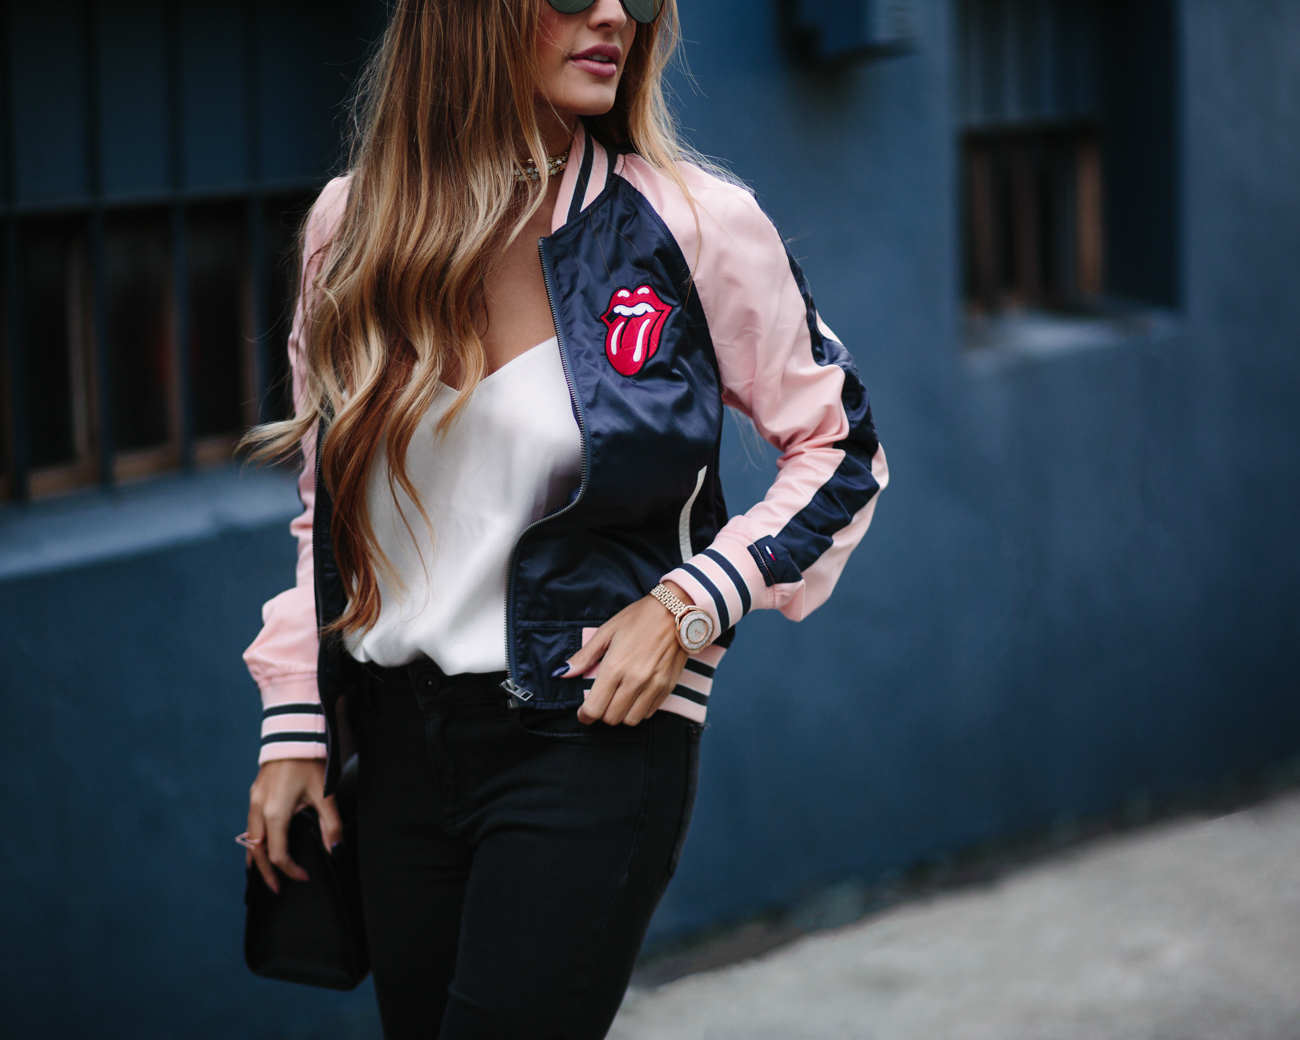 Tommy Rolling Stones Bomber Jacket